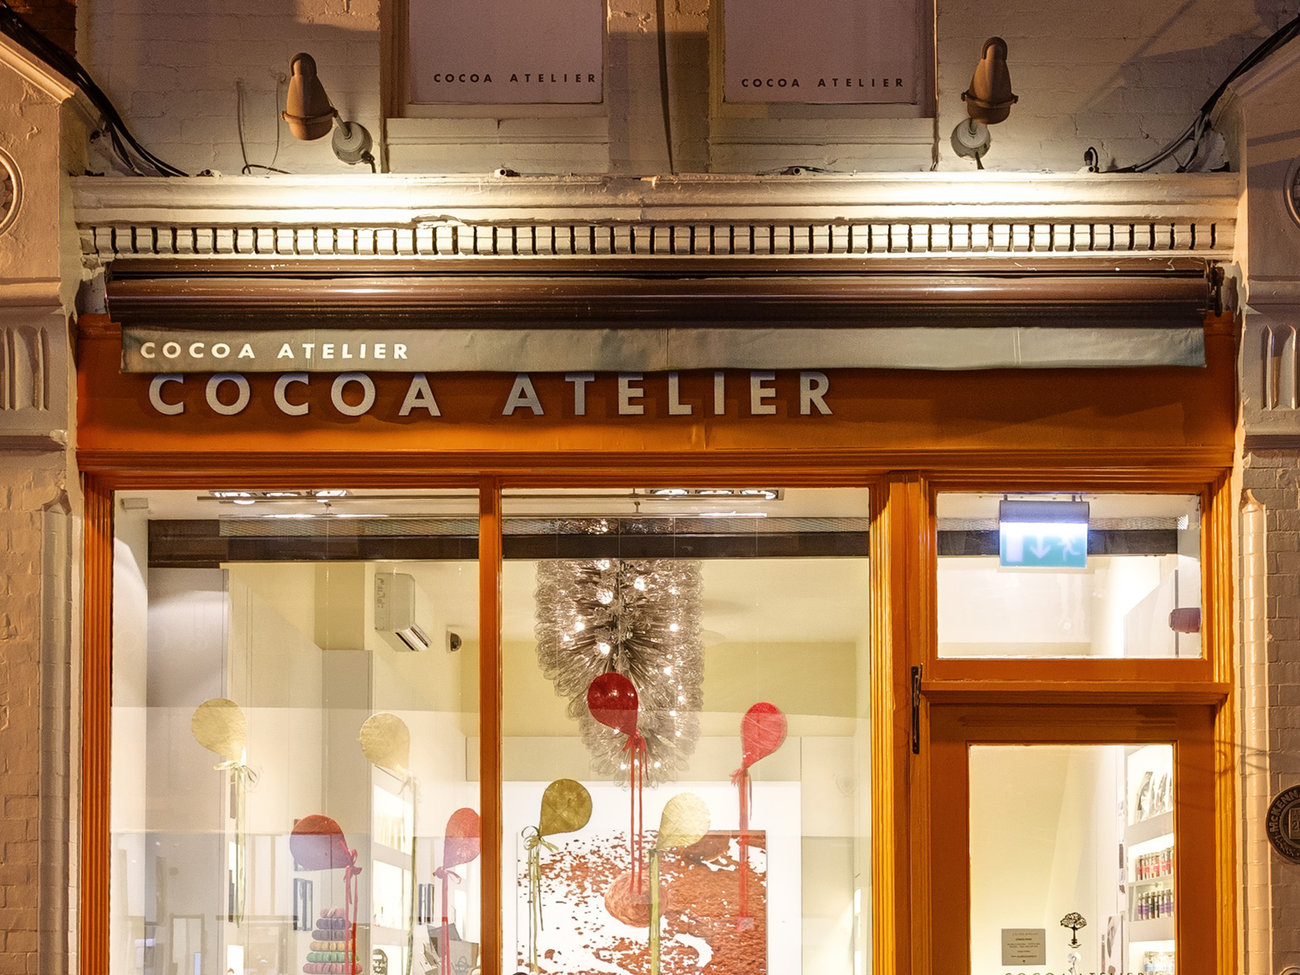 Cocoa Atelier Chocolate Store in Dublin